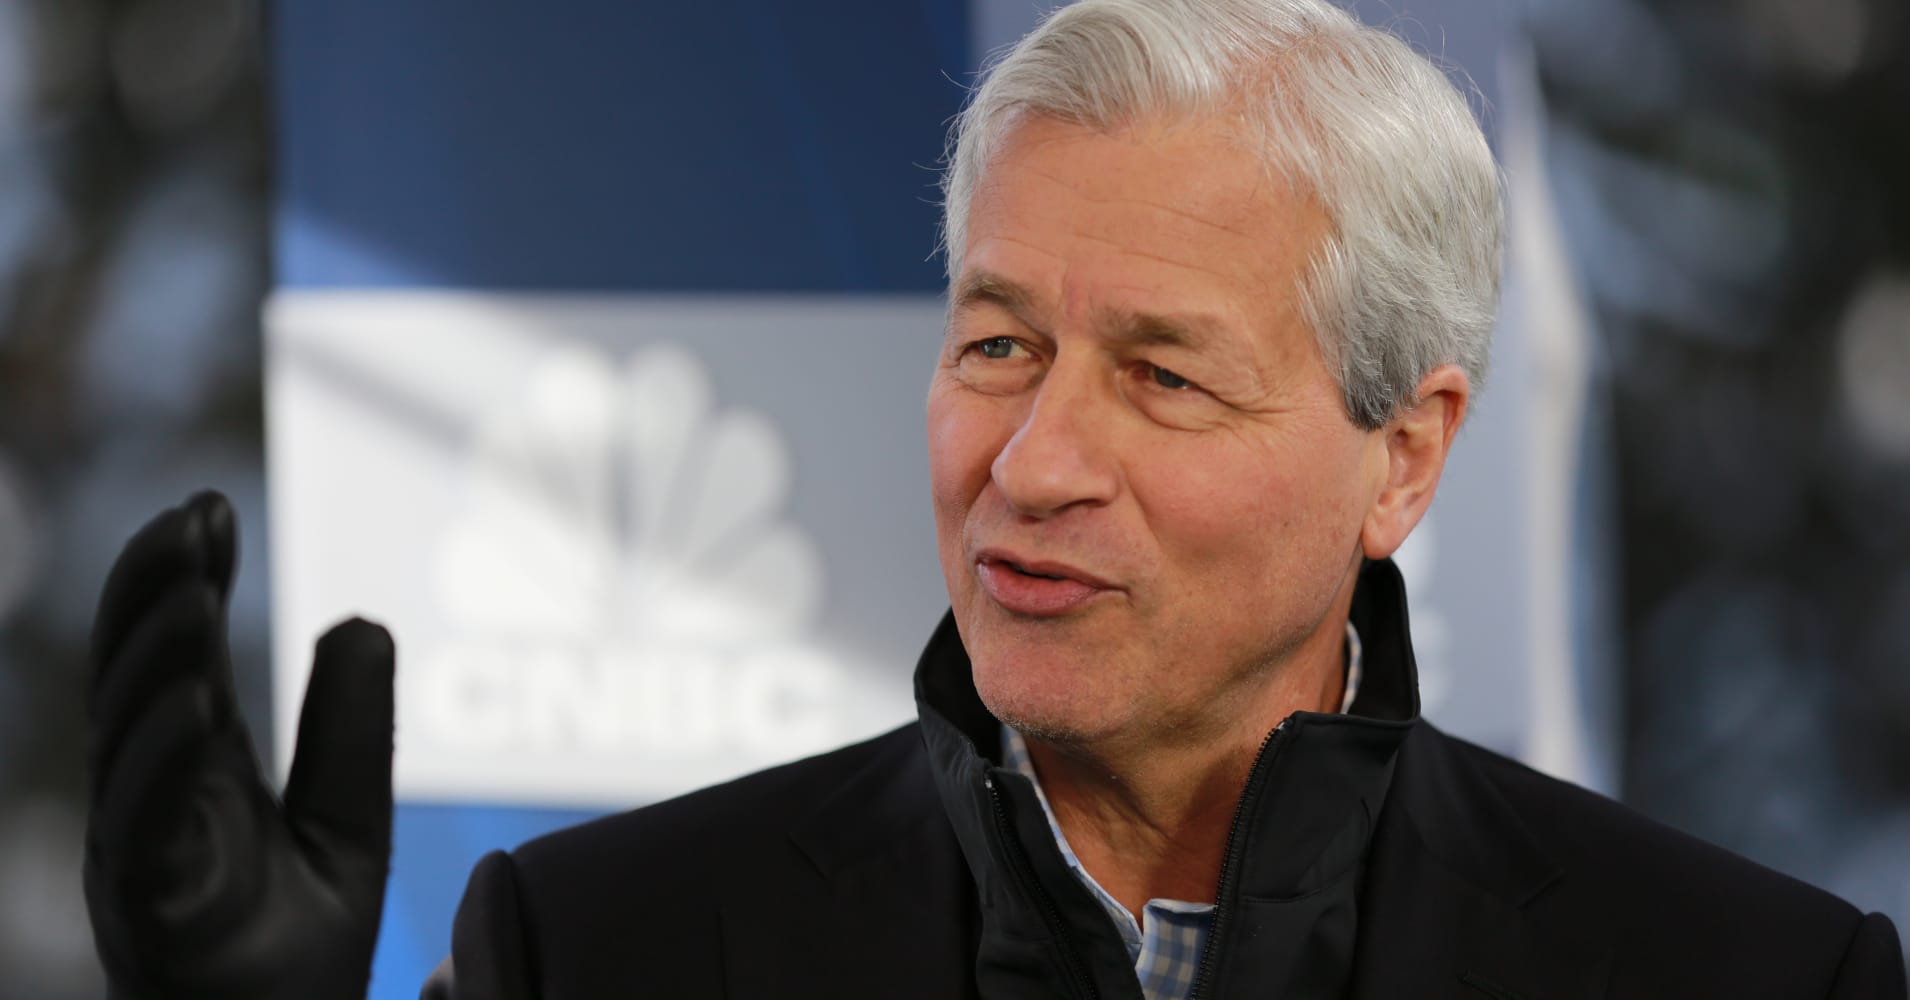 Jamie Dimon says Americans have 'some of the worst outcomes' in health care despite the best system